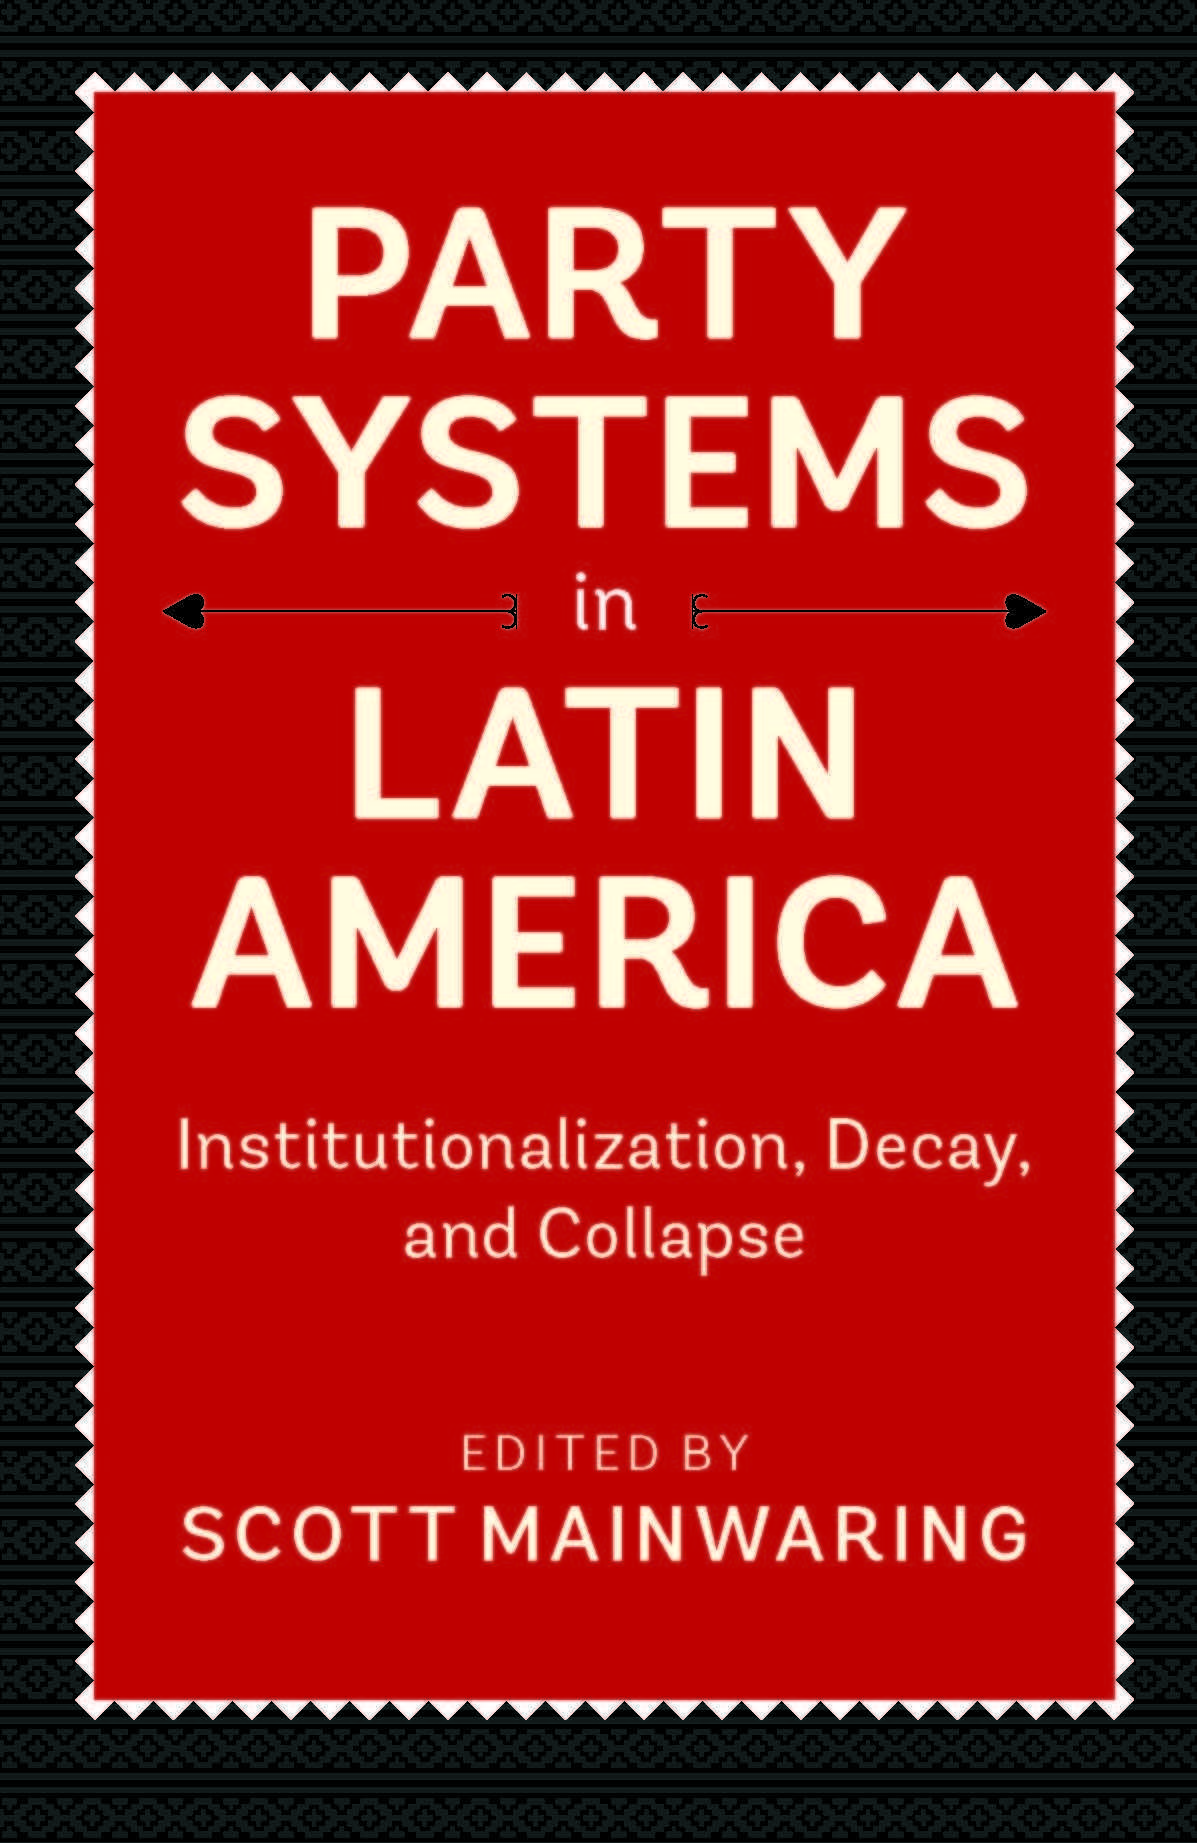 party systems in latin america Latin america is home to some of the world's largest companies as emerging markets such as brazil, chile, mexico, etc continue to account for a larger share of the world's gdp, companies from these regions grow to take the top spots in global rankings.